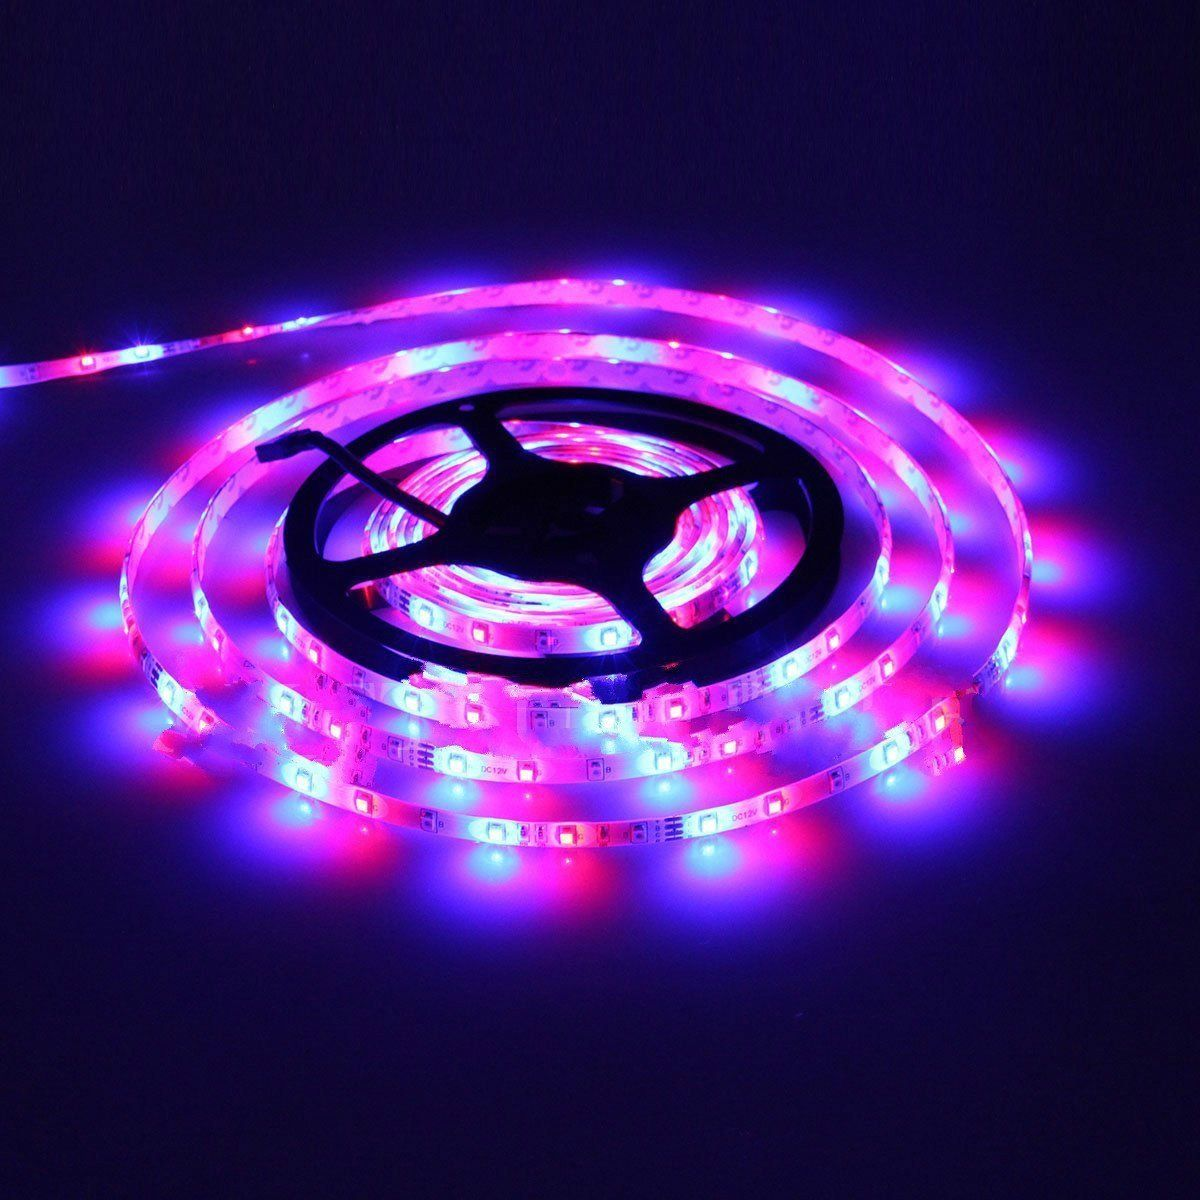 Ltrop 2 Reels 12v 32 8ft Waterproof Flexible Led Strip Light Kit Color Changing Smd3528 Rgb With 60 Flexible Led Strip Lights Strip Lighting Led Strip Lighting